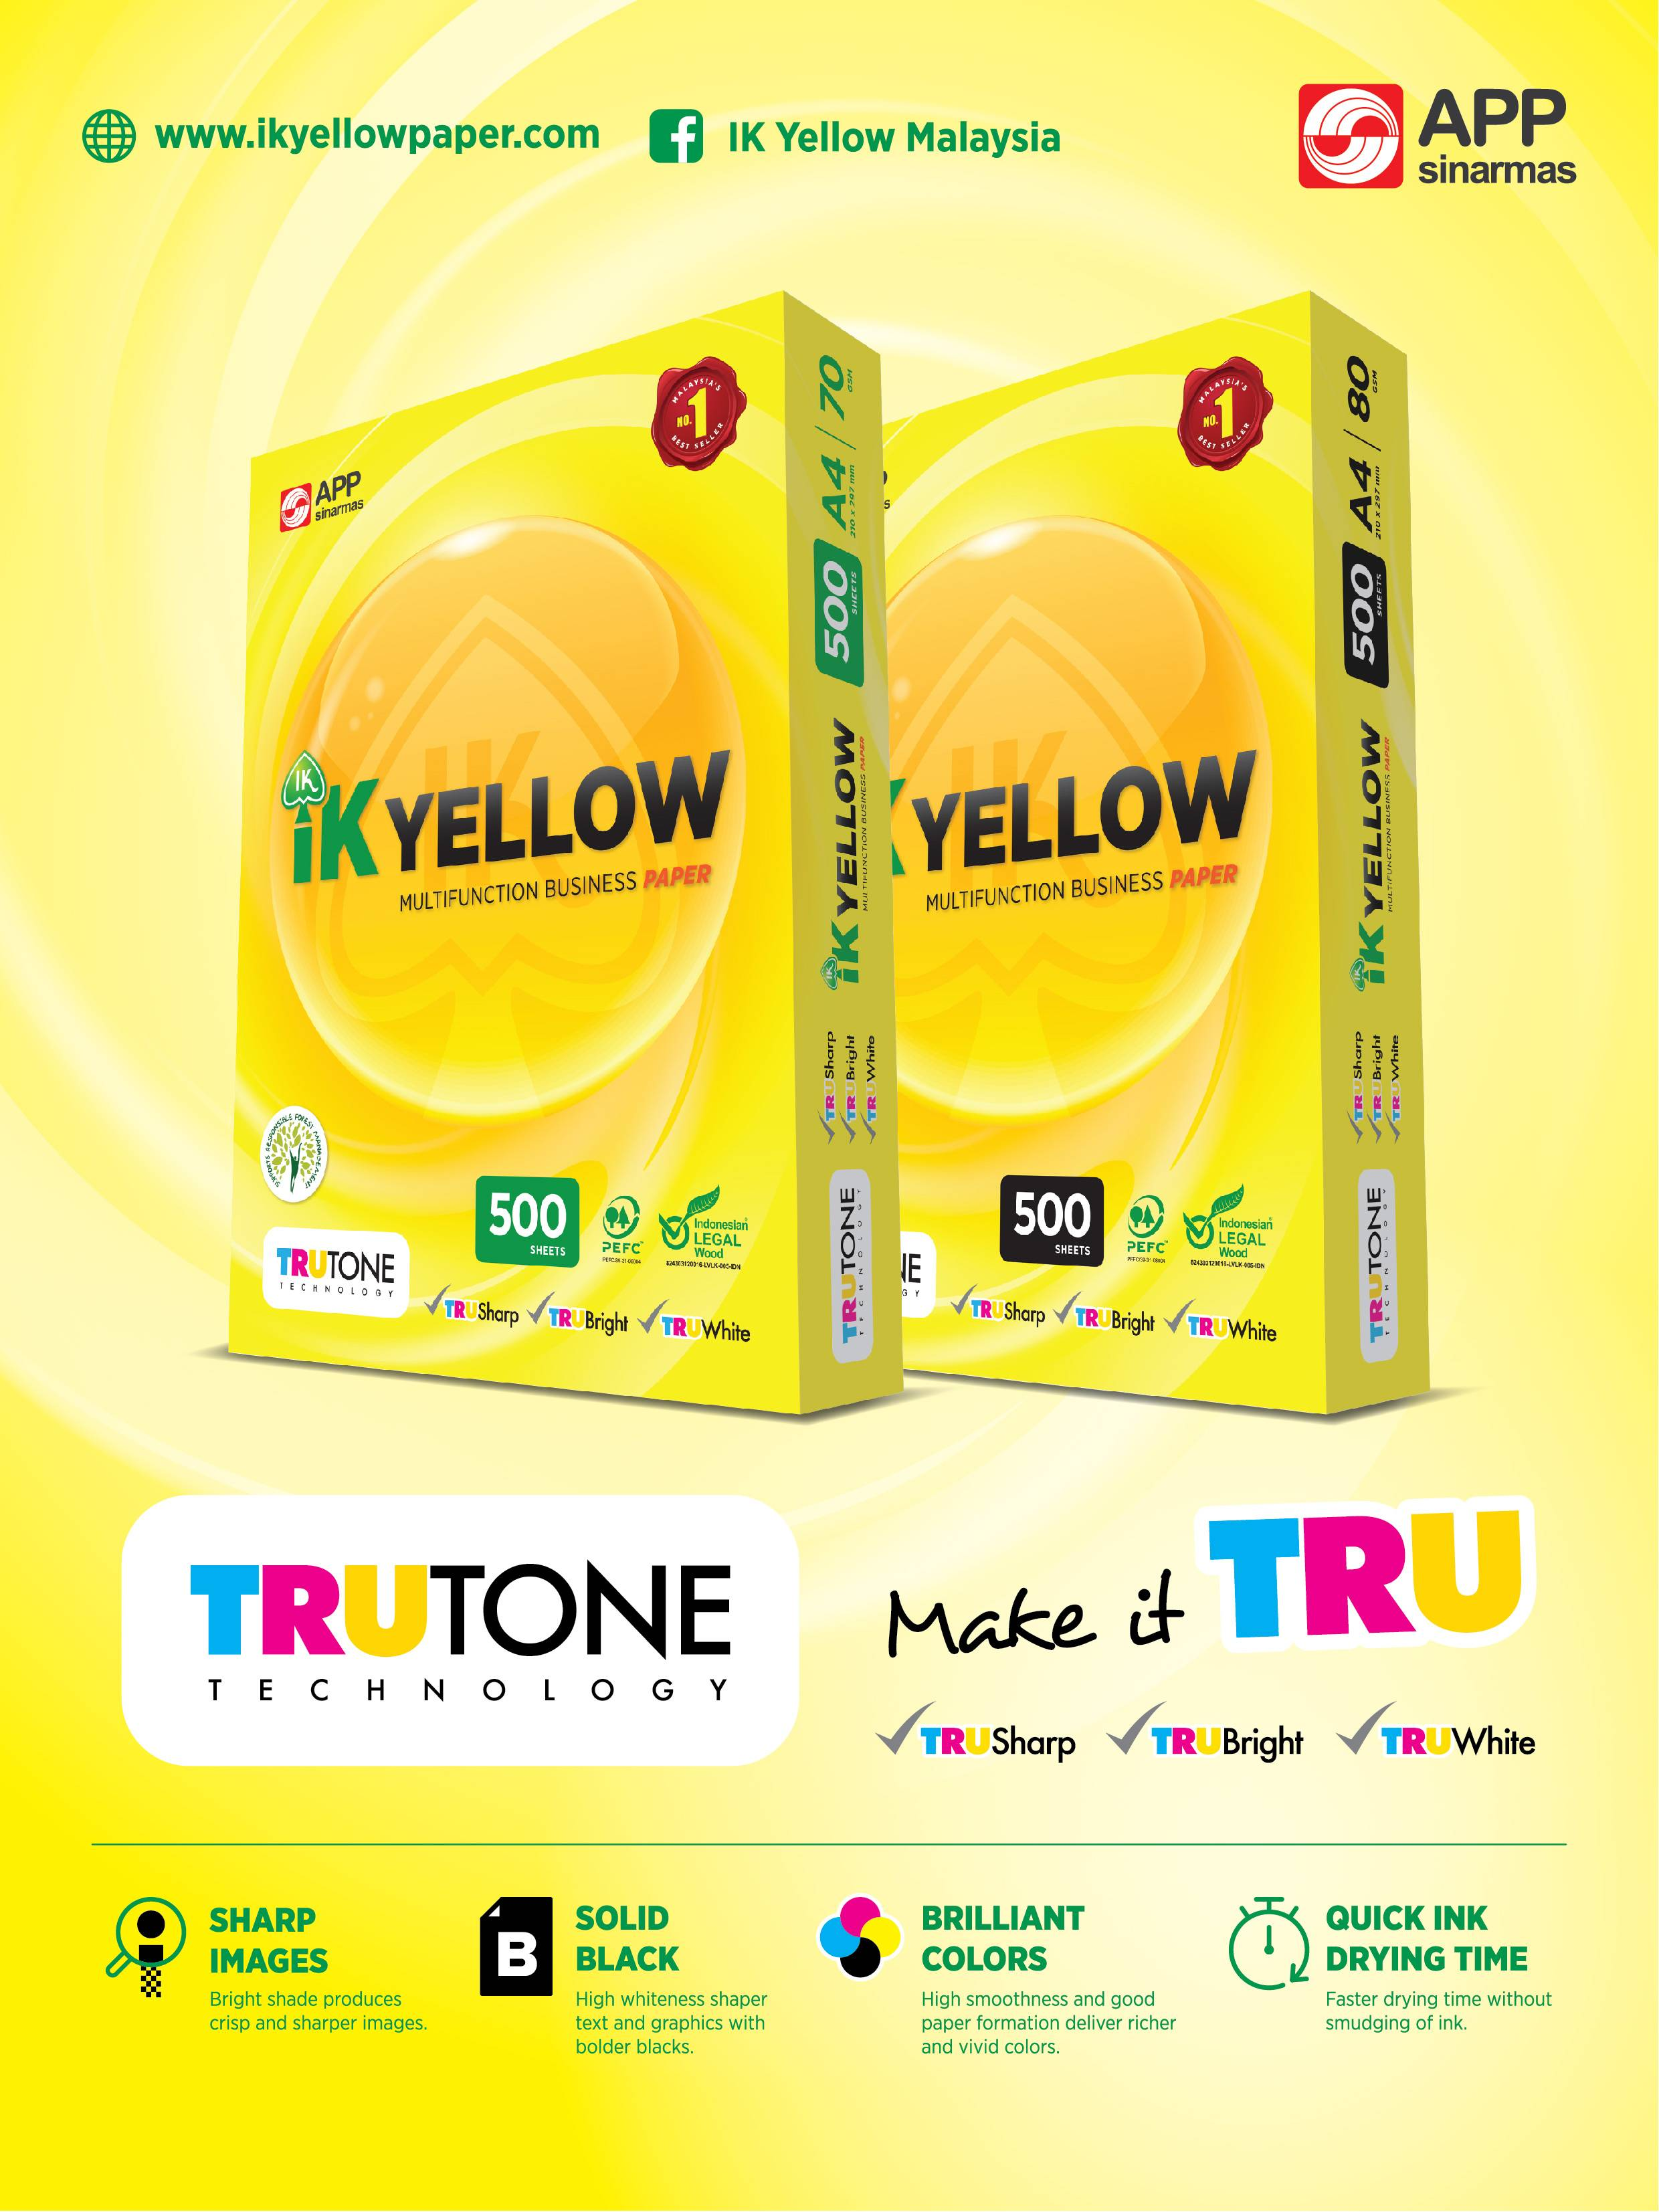 Image from IK Yellow